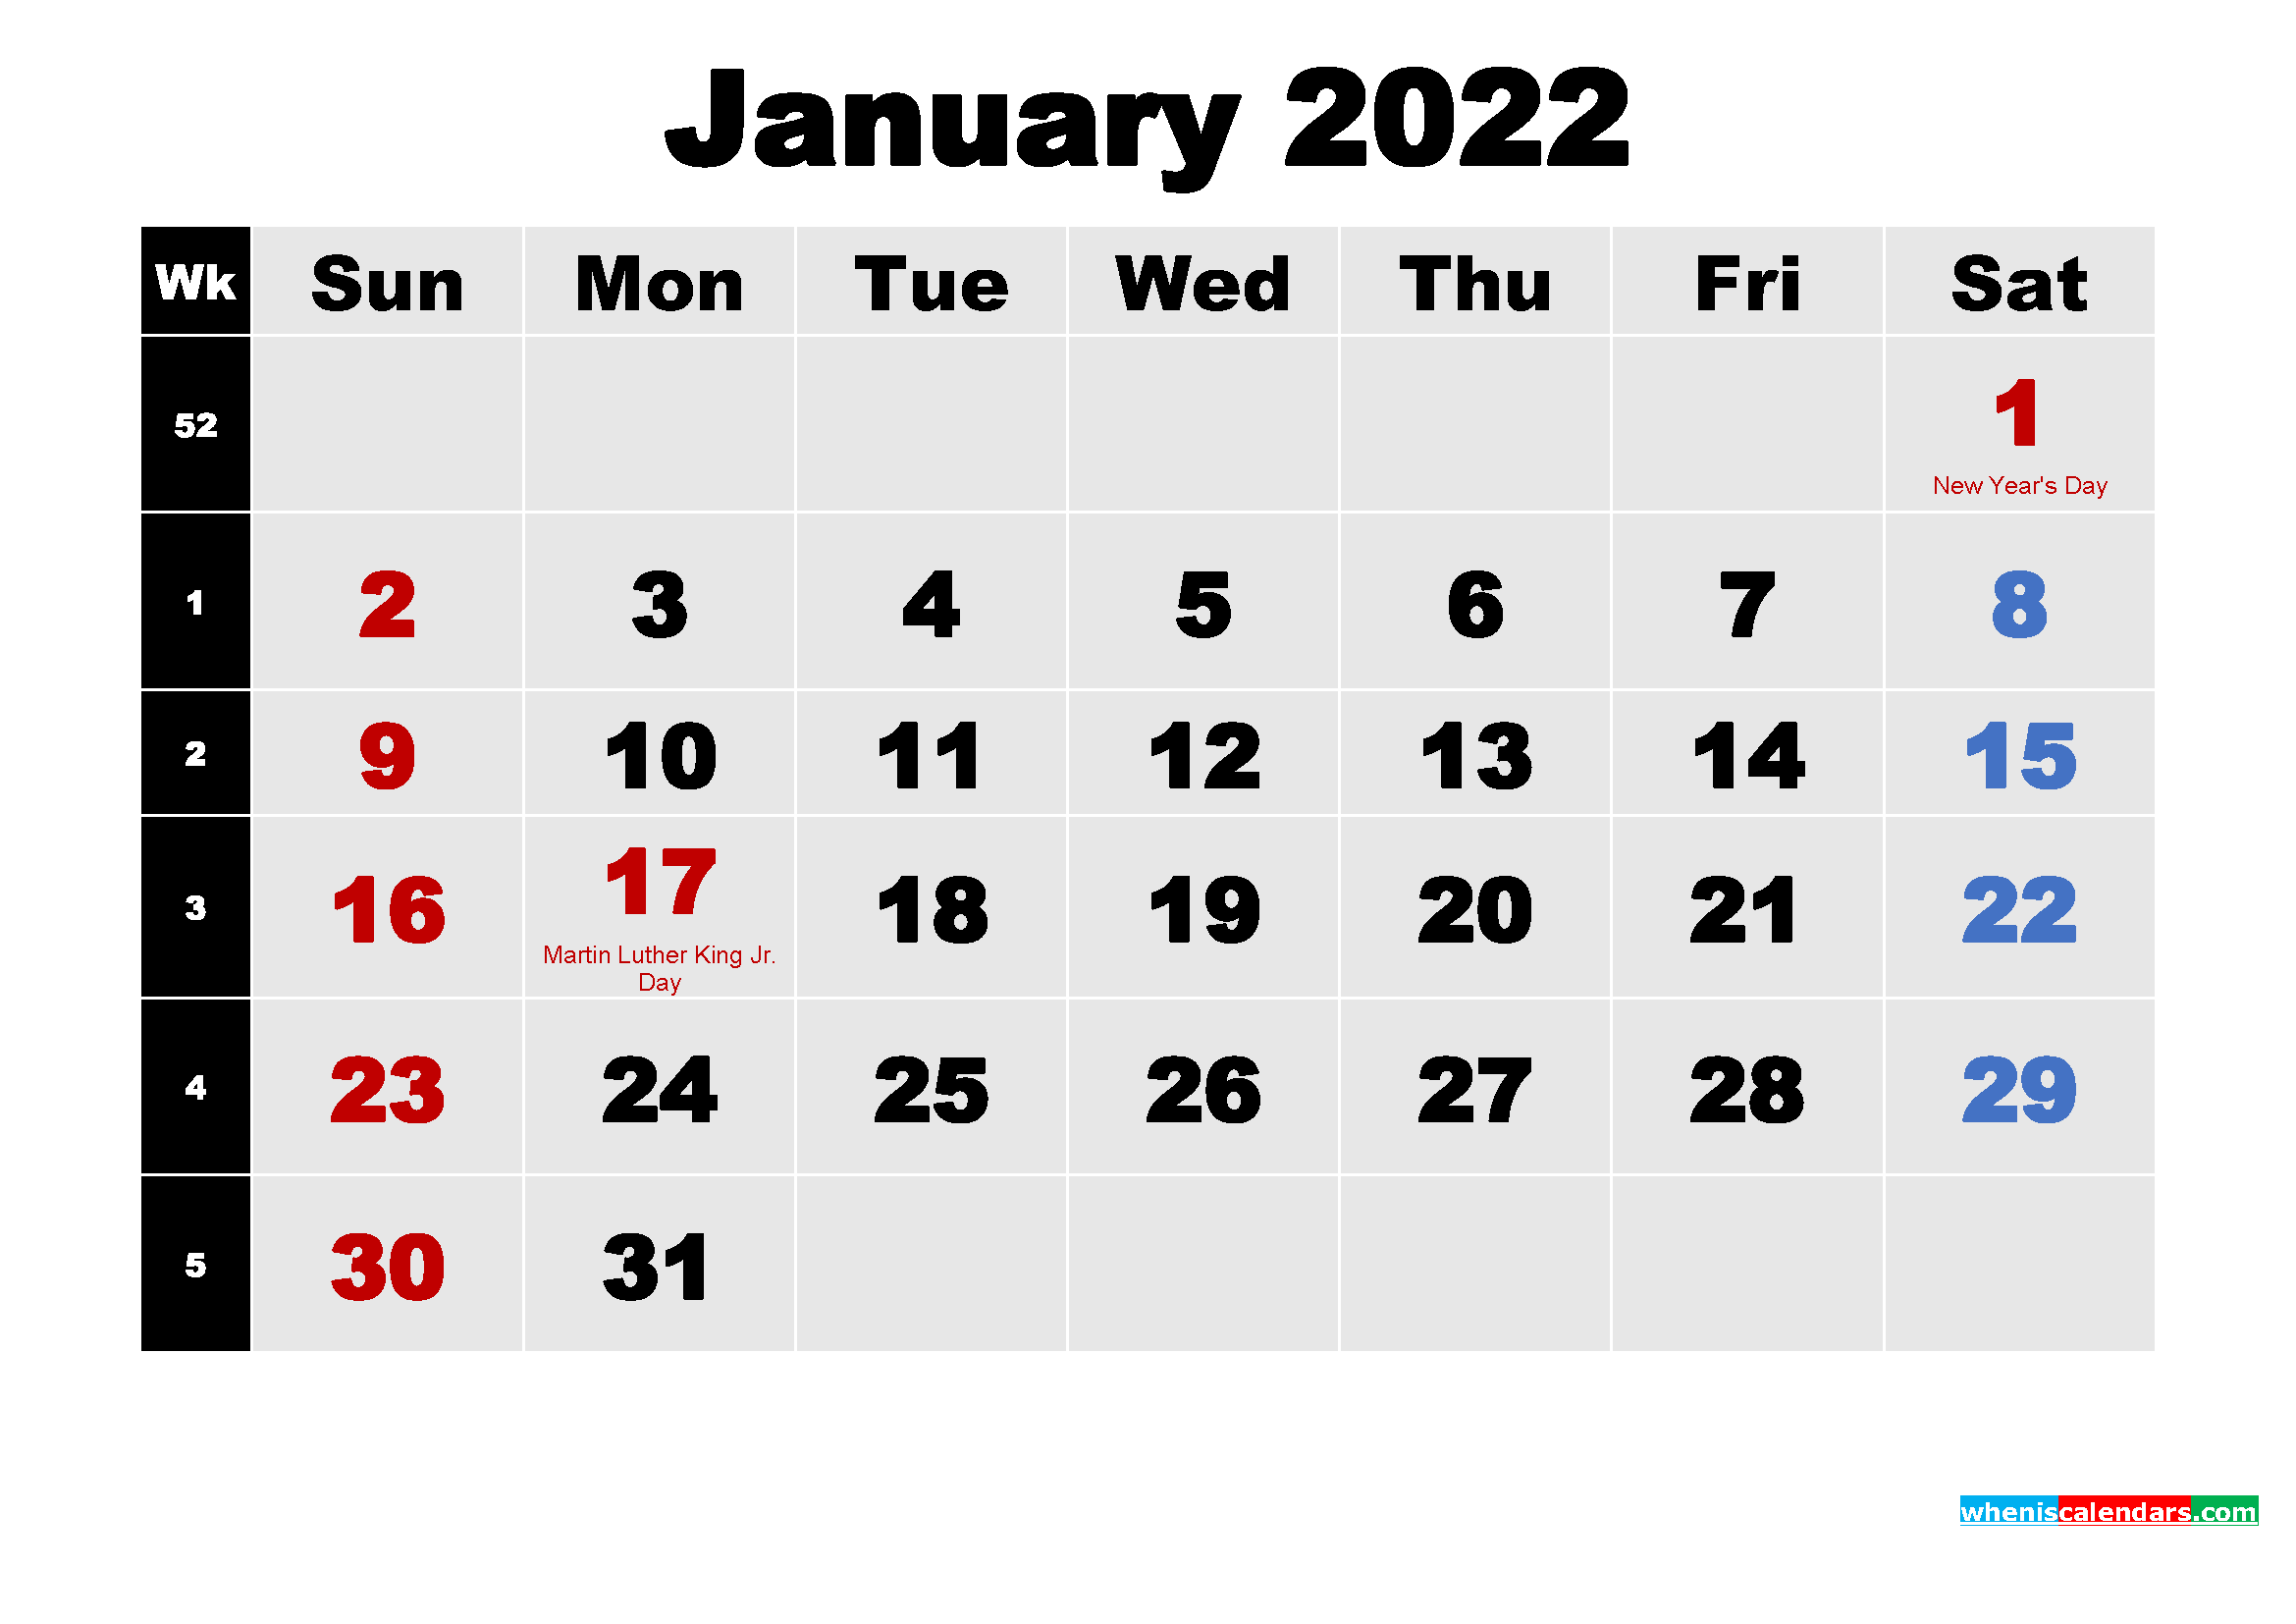 January 2022 Calendar with Holidays Wallpaper